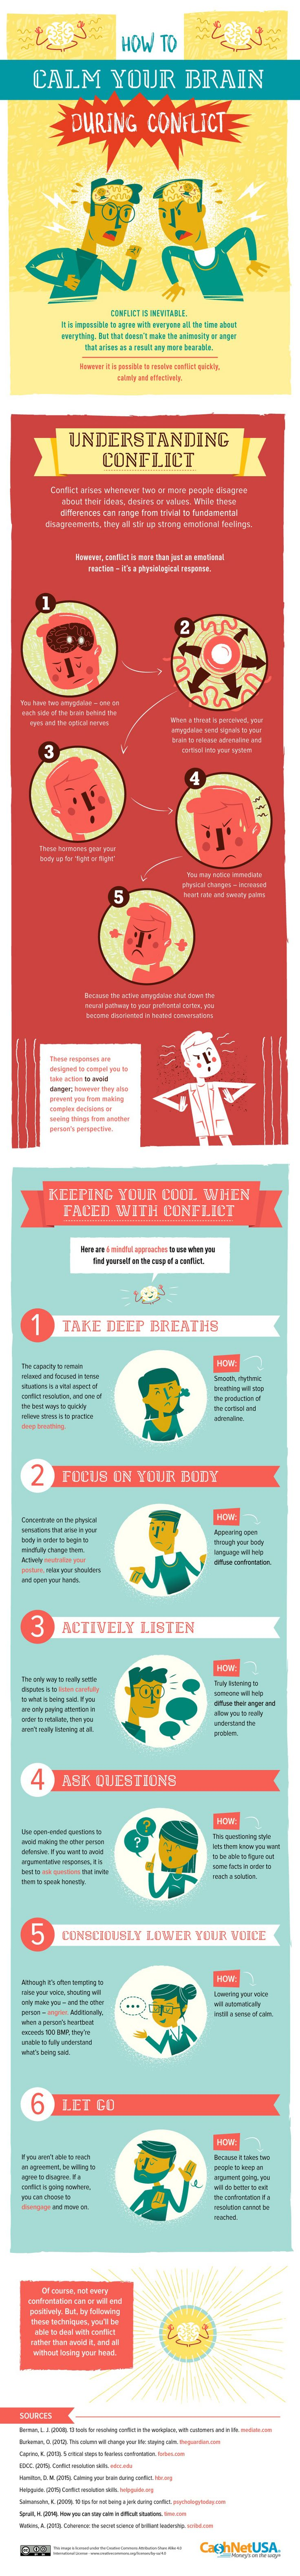 6 Best Ways to Calm Down When You Are Angry